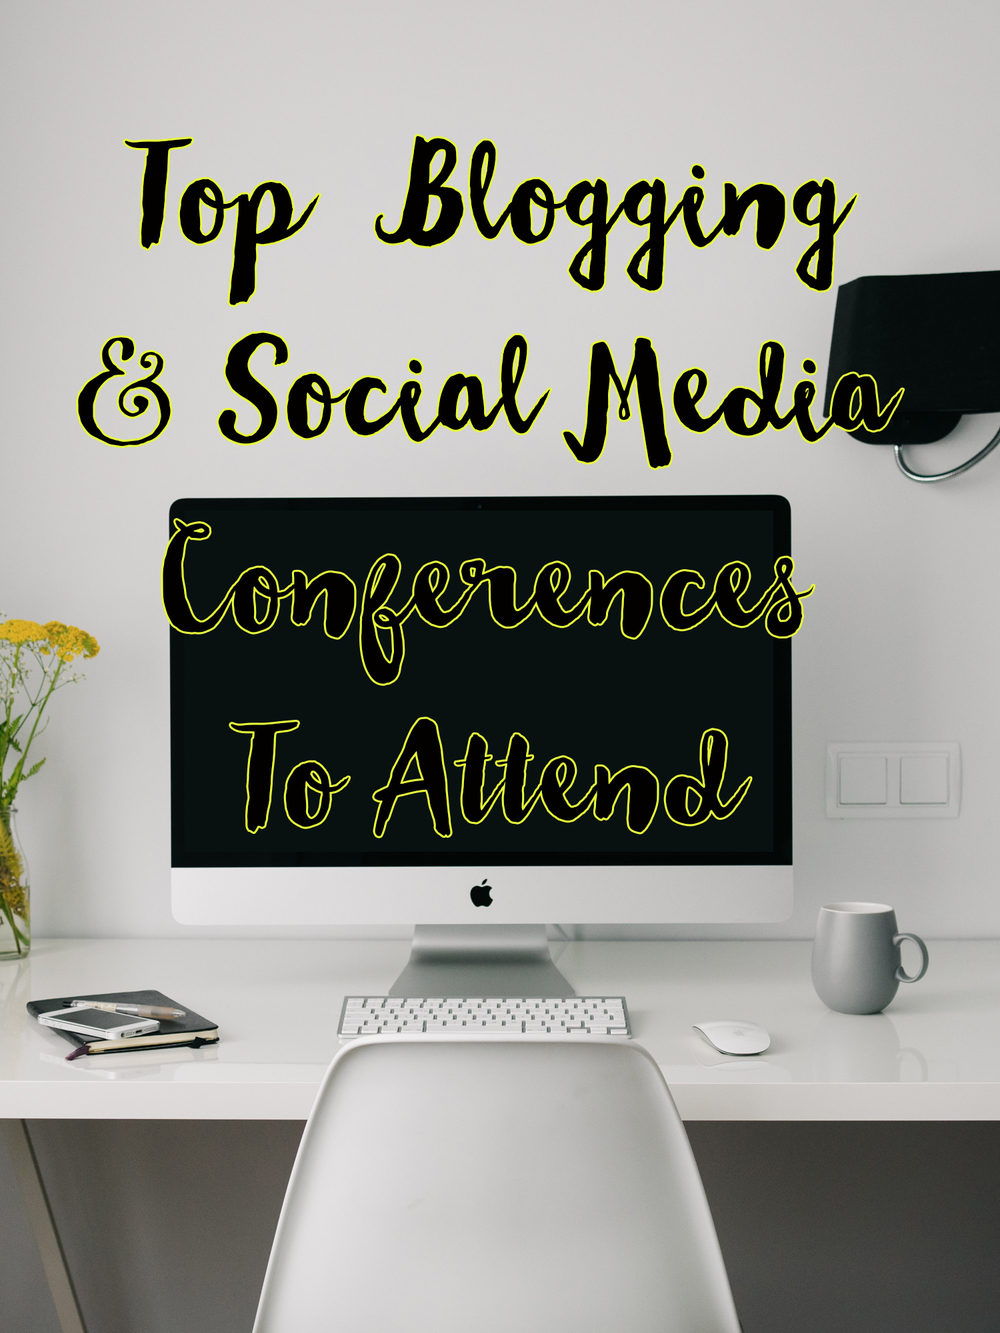 wanting to learn about a new way to connect with fellow bloggers and improve your blog?